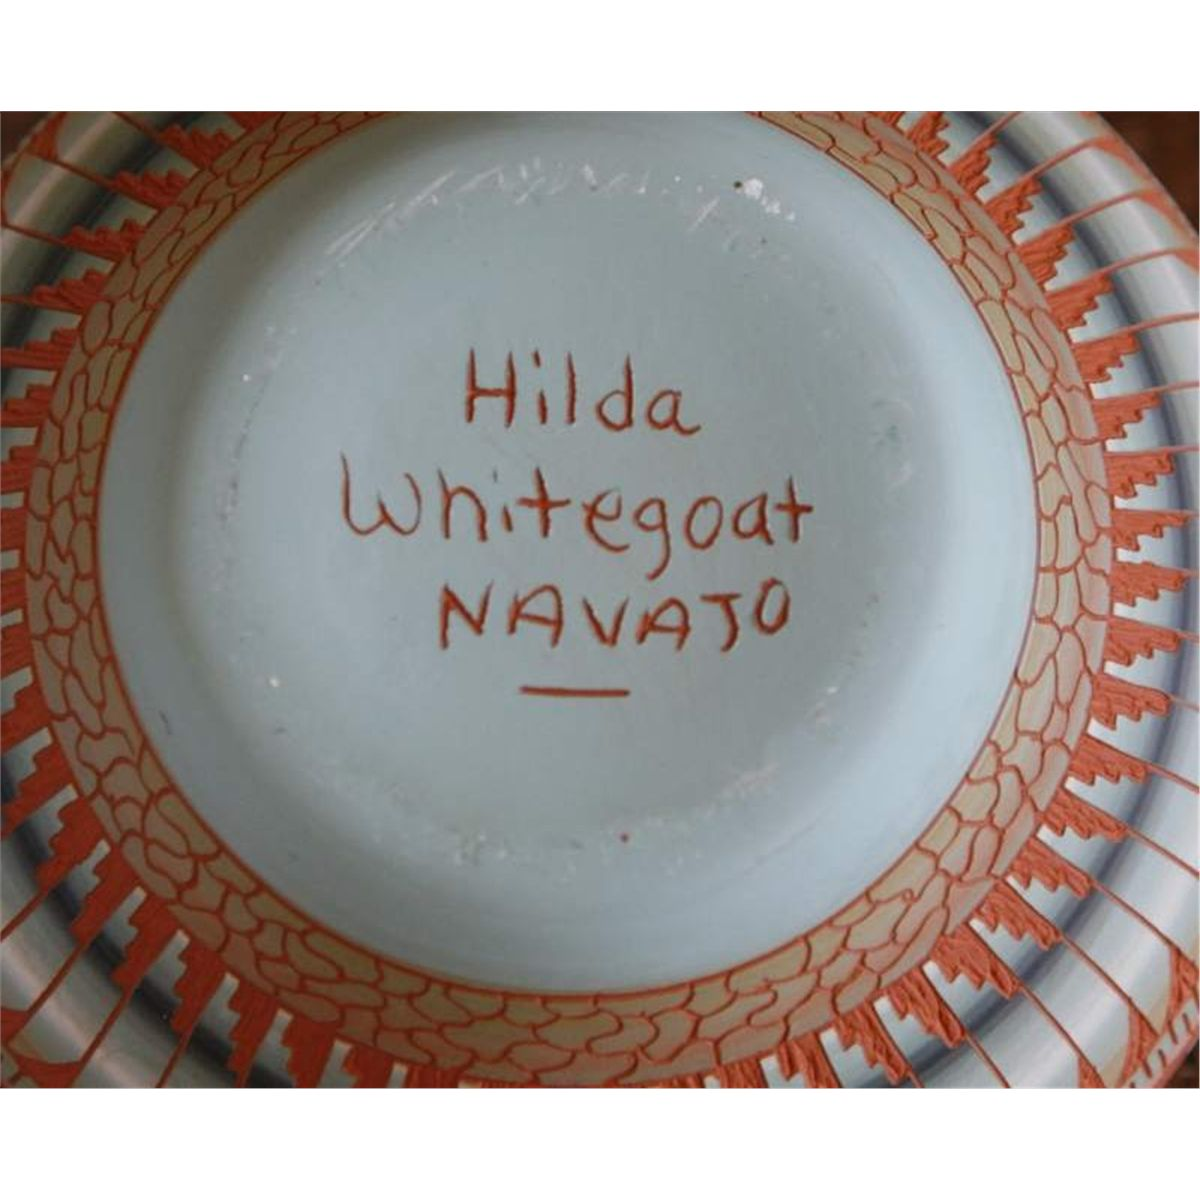 Native American Pottery, etched Signed: Hilda Whitegoat. Navajo